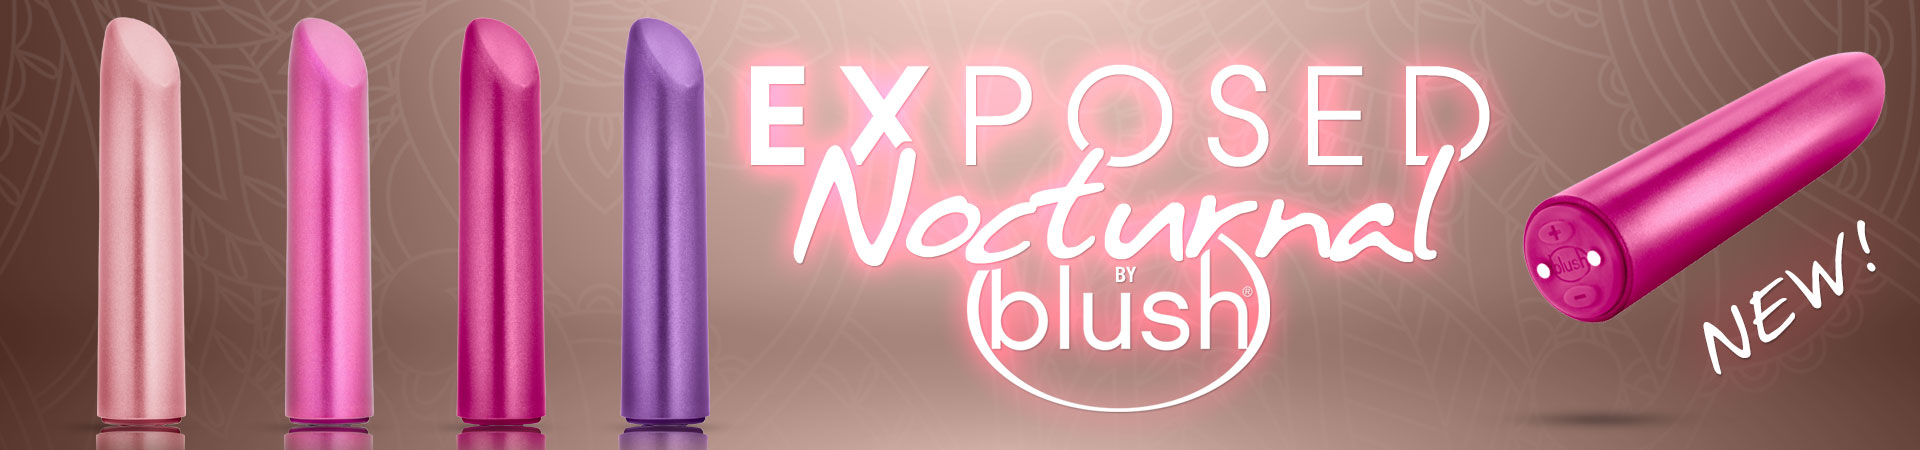 """NEW! Exposed Nocturnal by Blush - """"We are not bragging here, just telling the truth. These are incredibly strong and rumbly! Please power one up and compare to anything you've ever felt."""" - Ducky DooLittle, Sex Educator"""